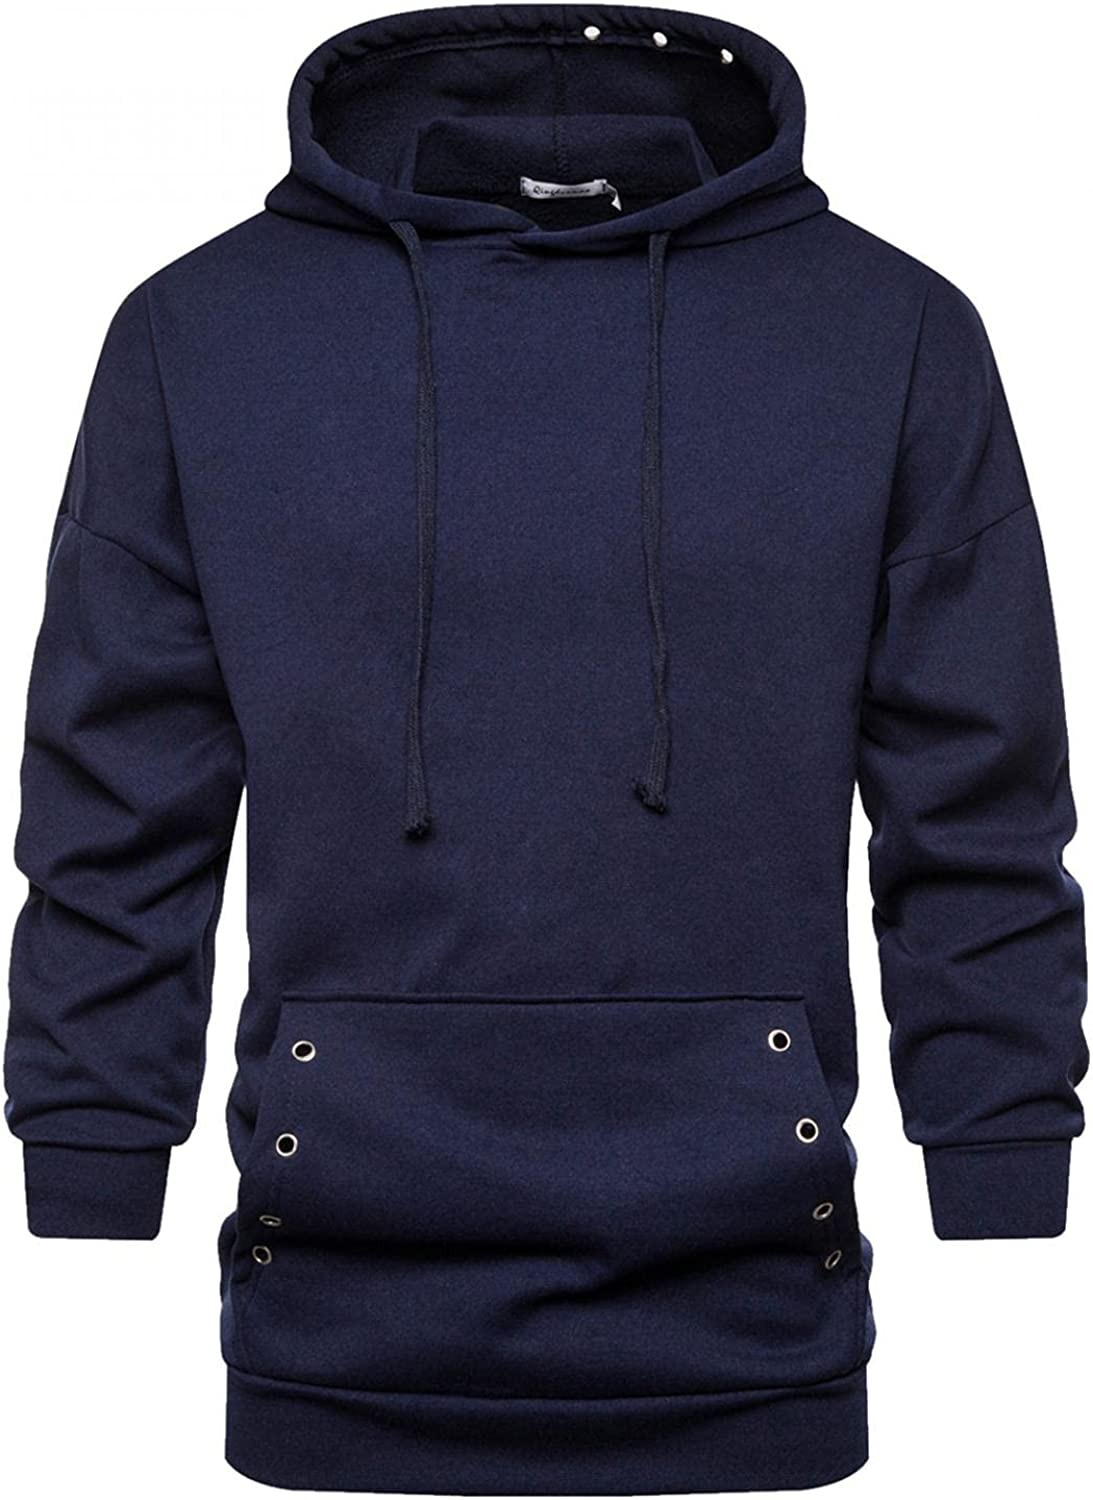 Men's Hoodies Pullover Hooded Sweatshirts Heavyweight Casual Solid Long Sleeve Tops Hollow Ring T-Shirts Blouse